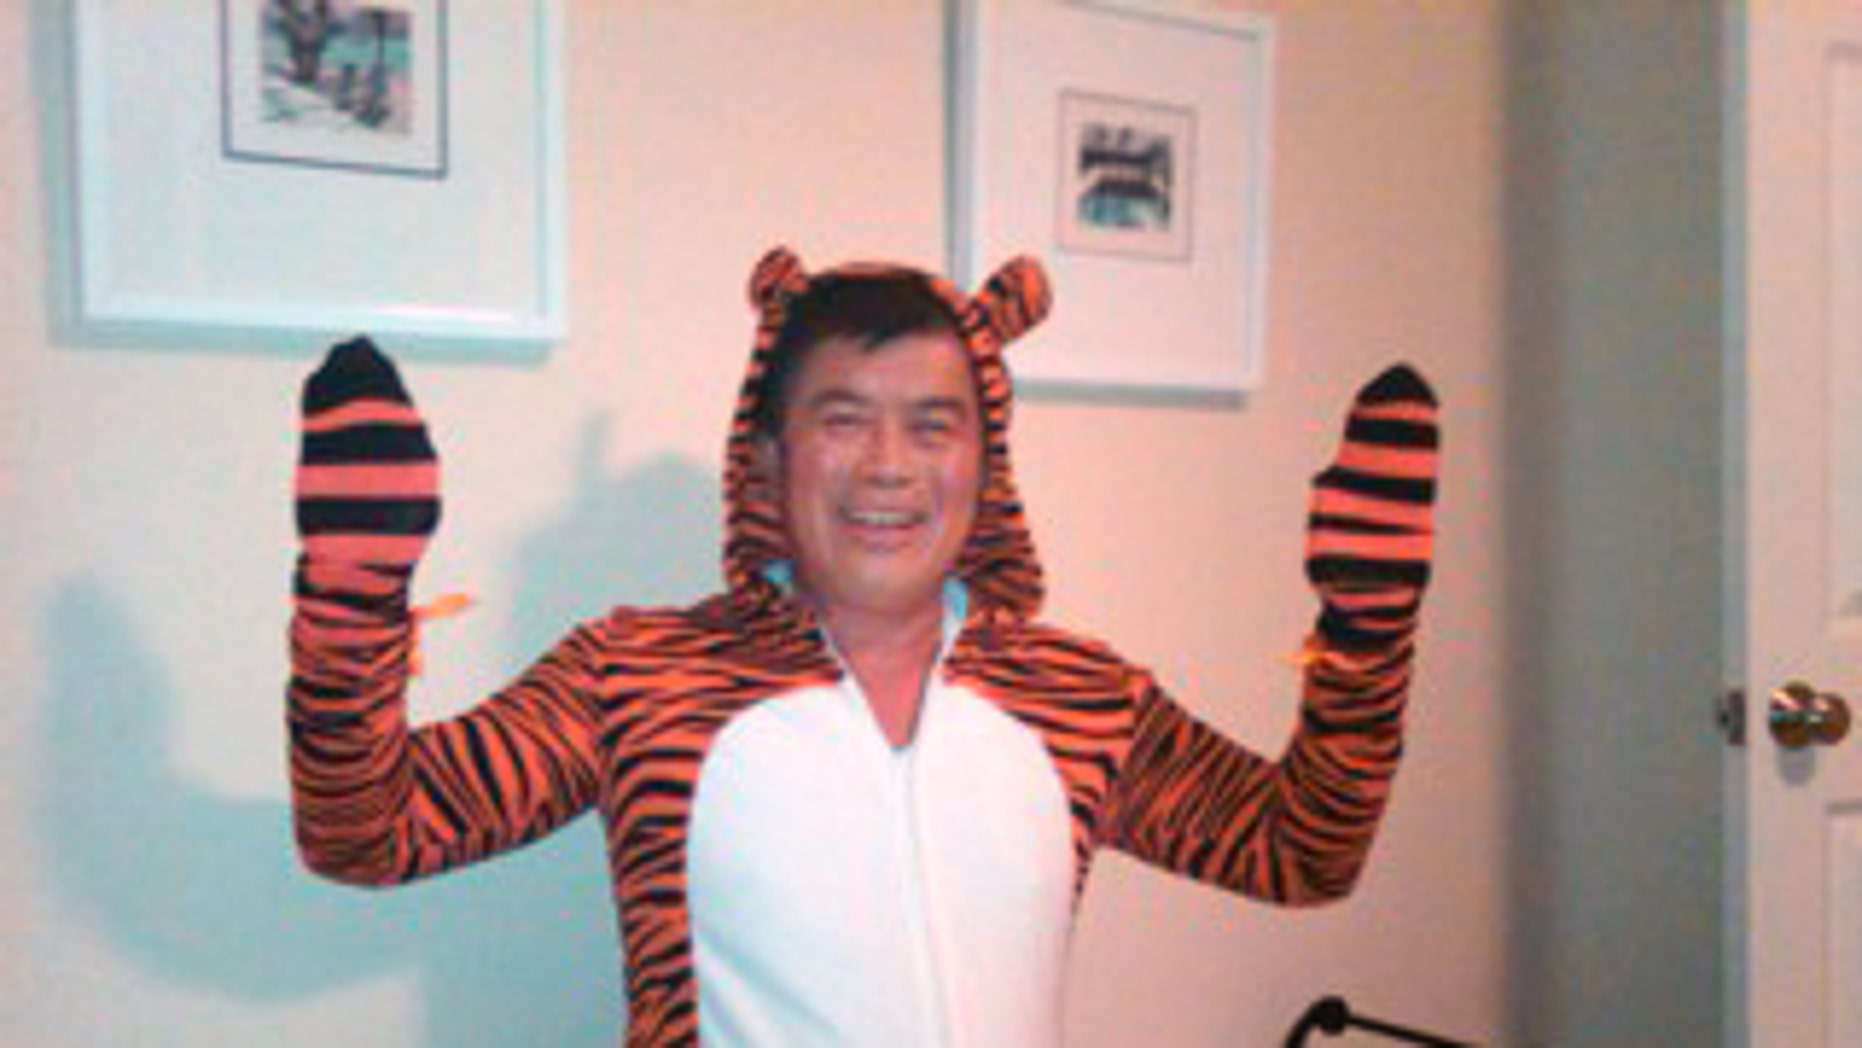 """FILE - In this image provided by the Willamette Week newspaper, and taken Oct. 2, 2010 in Portland, Ore, U.S. Rep. David Wu is seen in a tiger costume. The Oregon congressman says that he accepted prescription drugs from a campaign contributor last October, around the time when members of his staff complained of his erratic behavior. Wu said the photos were taken while he was """"joshing around"""" with his children in October just before Halloween. (AP Photo/Willamette Week)"""